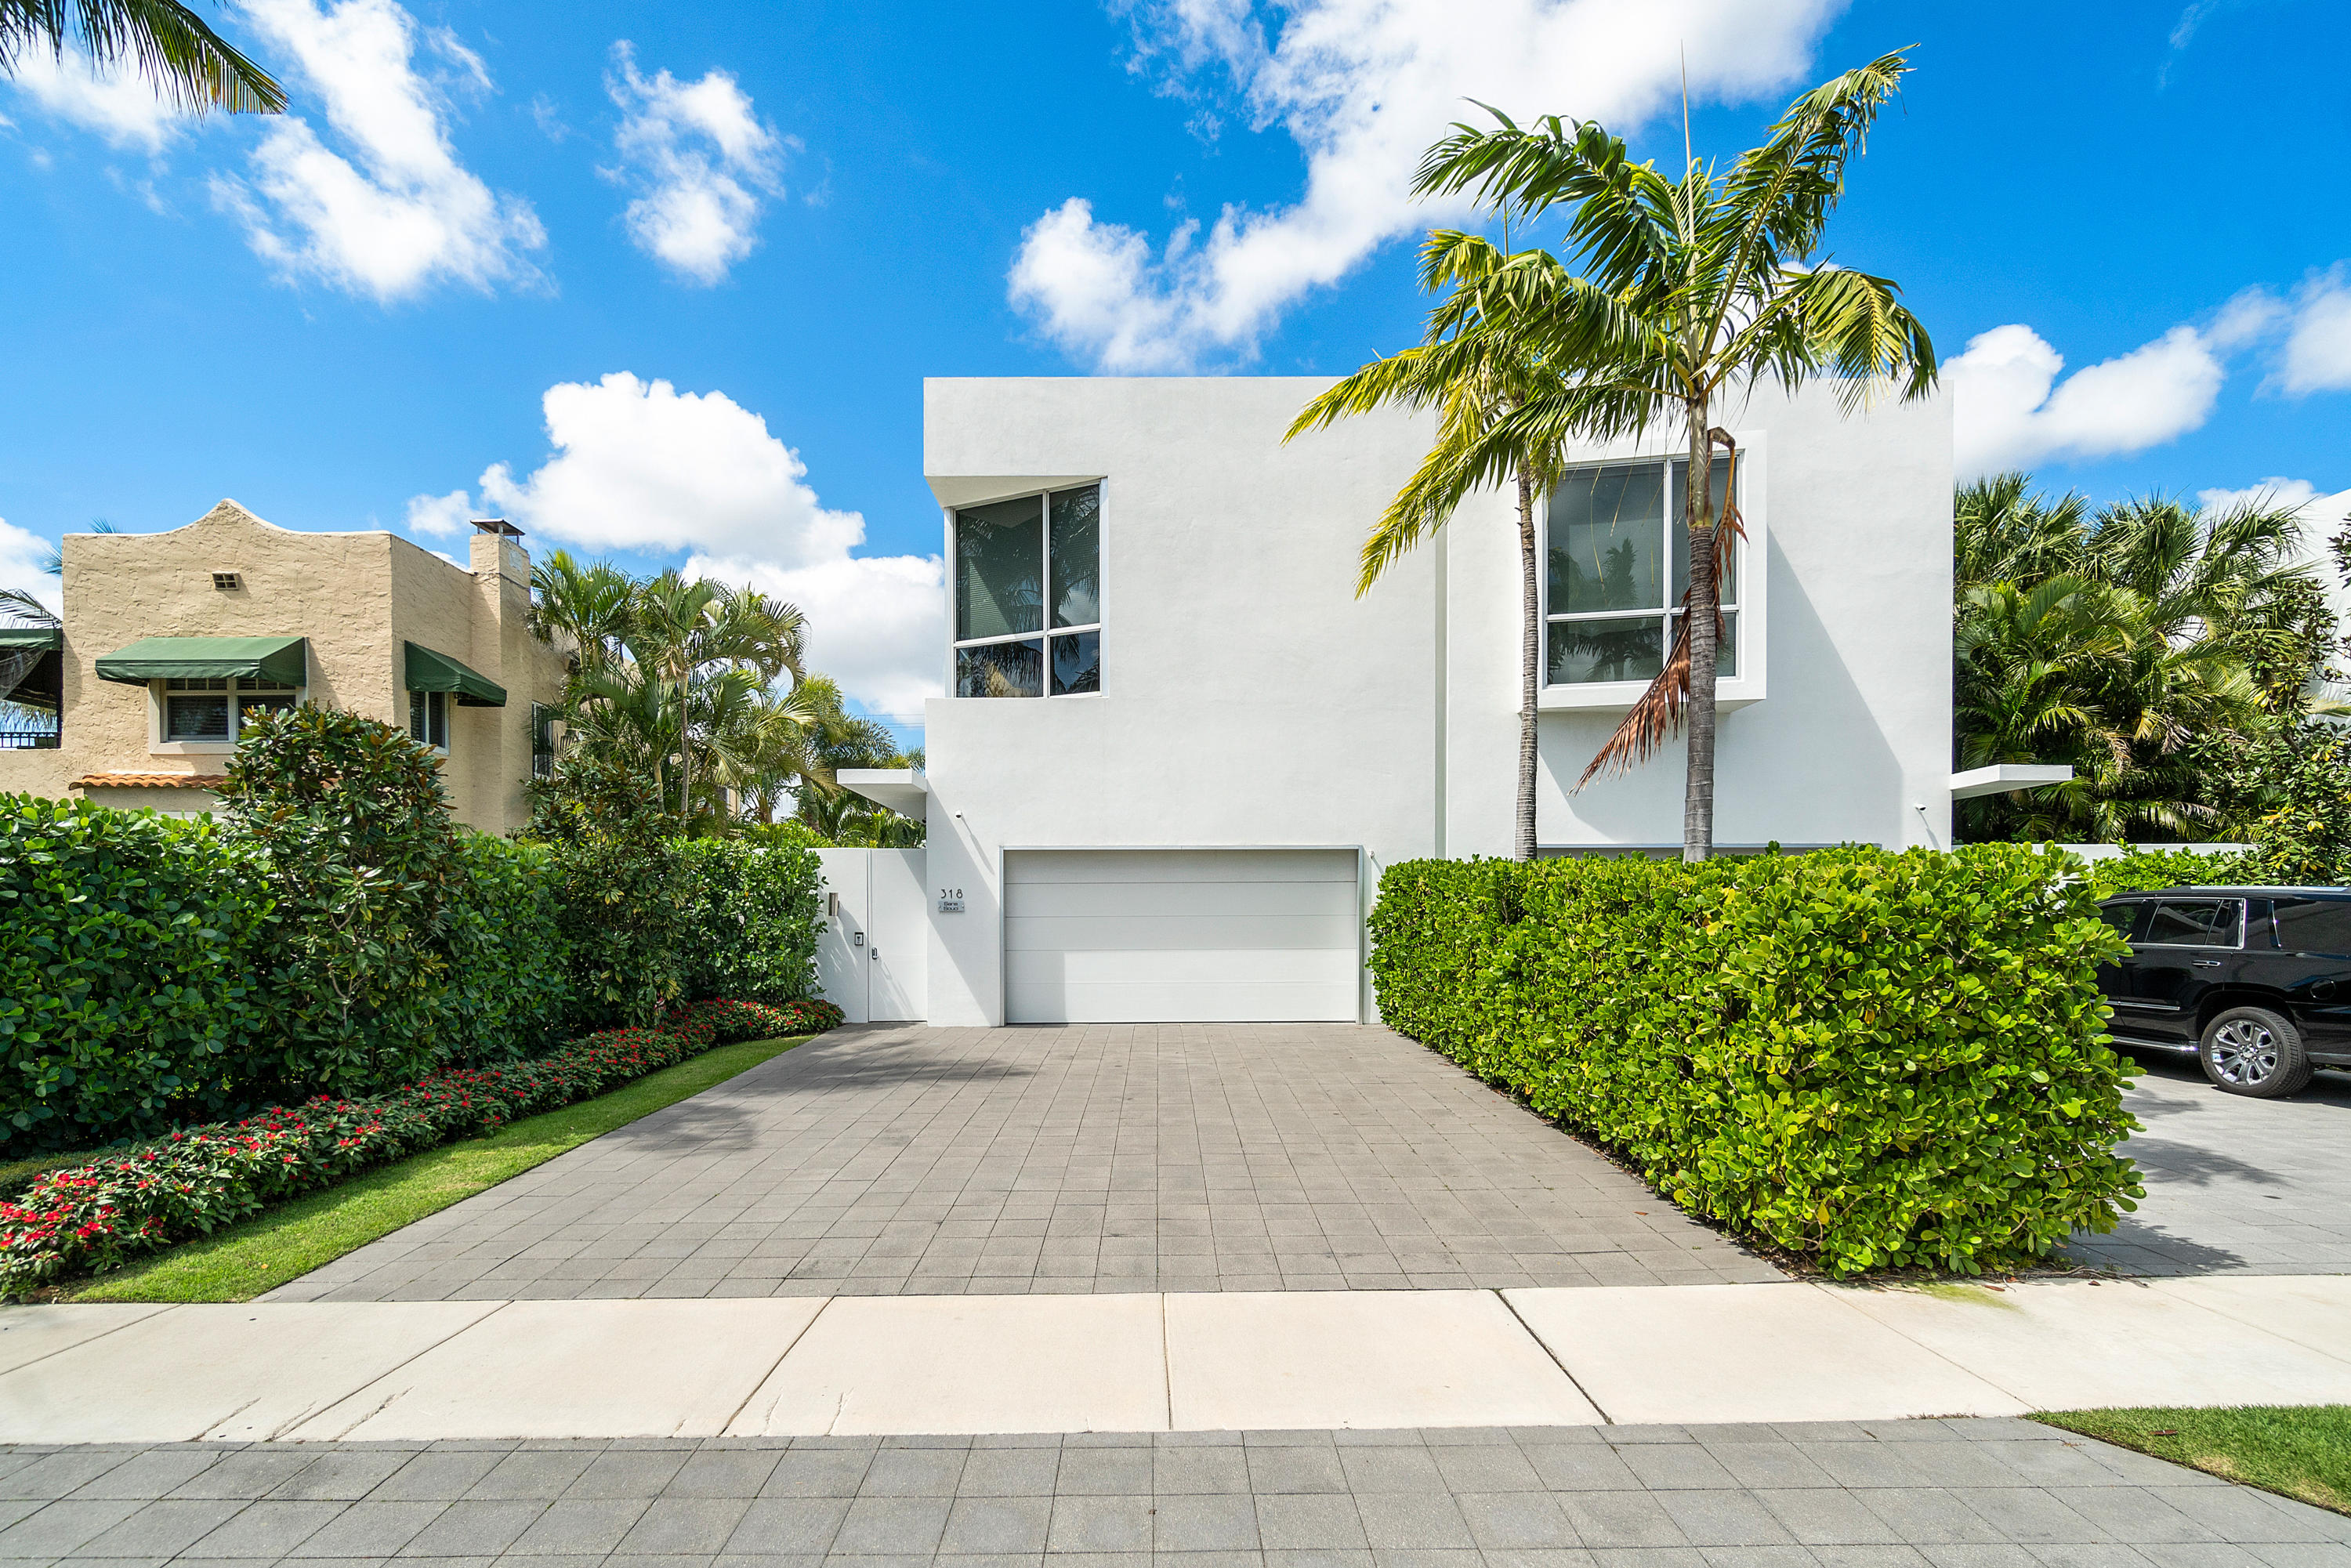 318 7th Avenue, Delray Beach, Florida 33483, 3 Bedrooms Bedrooms, ,3.1 BathroomsBathrooms,Townhouse,For Sale,7th,RX-10701938